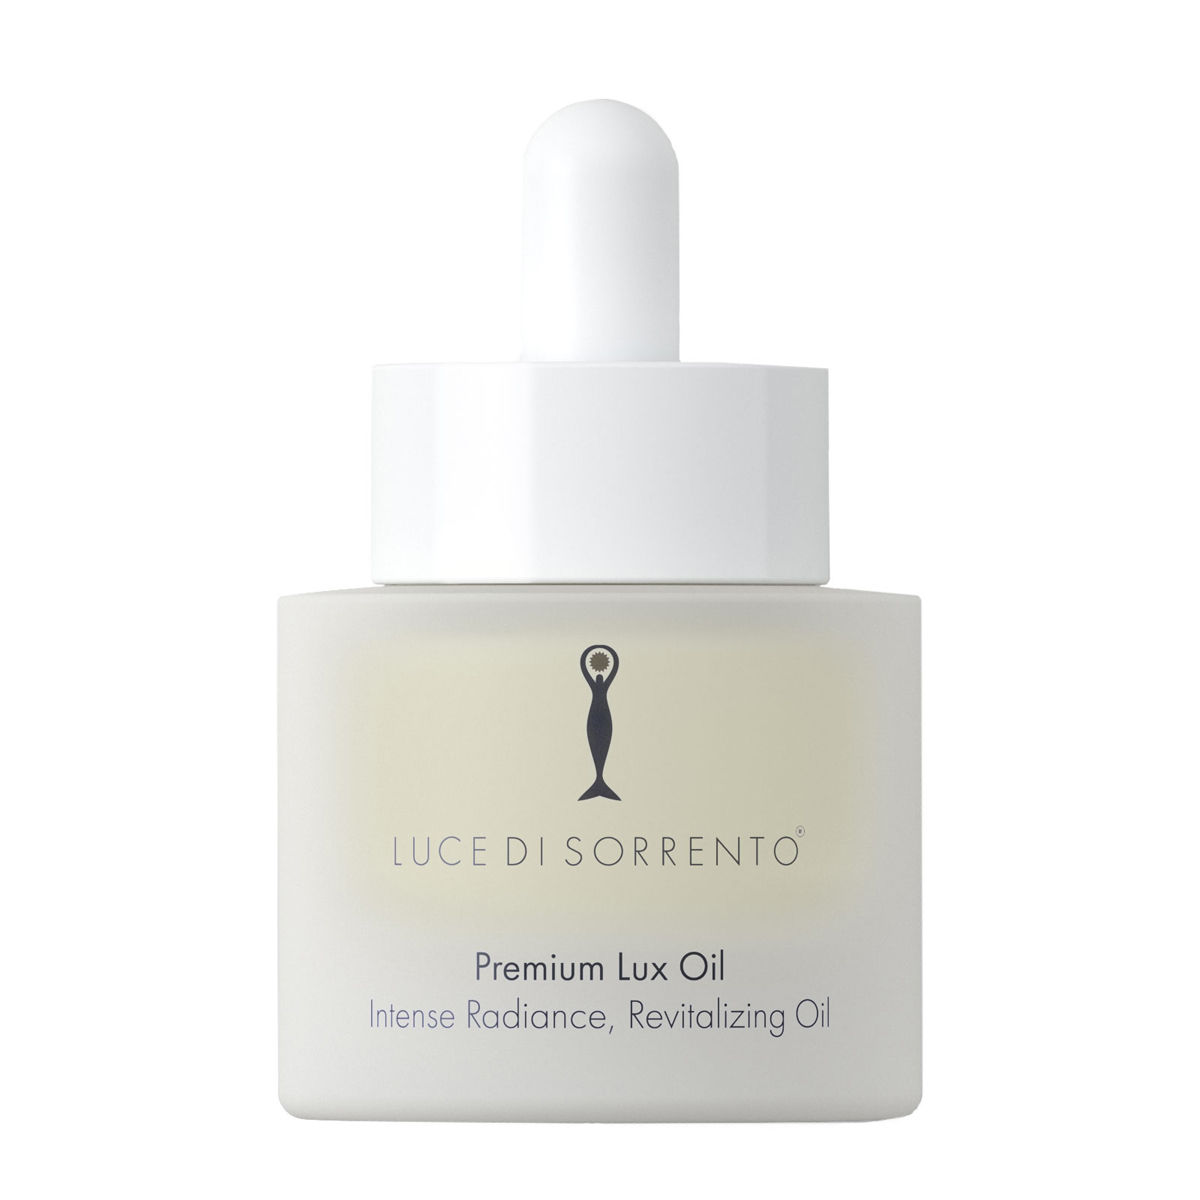 LUCE DI SORRENTO Premium Lux Oil 15 ml